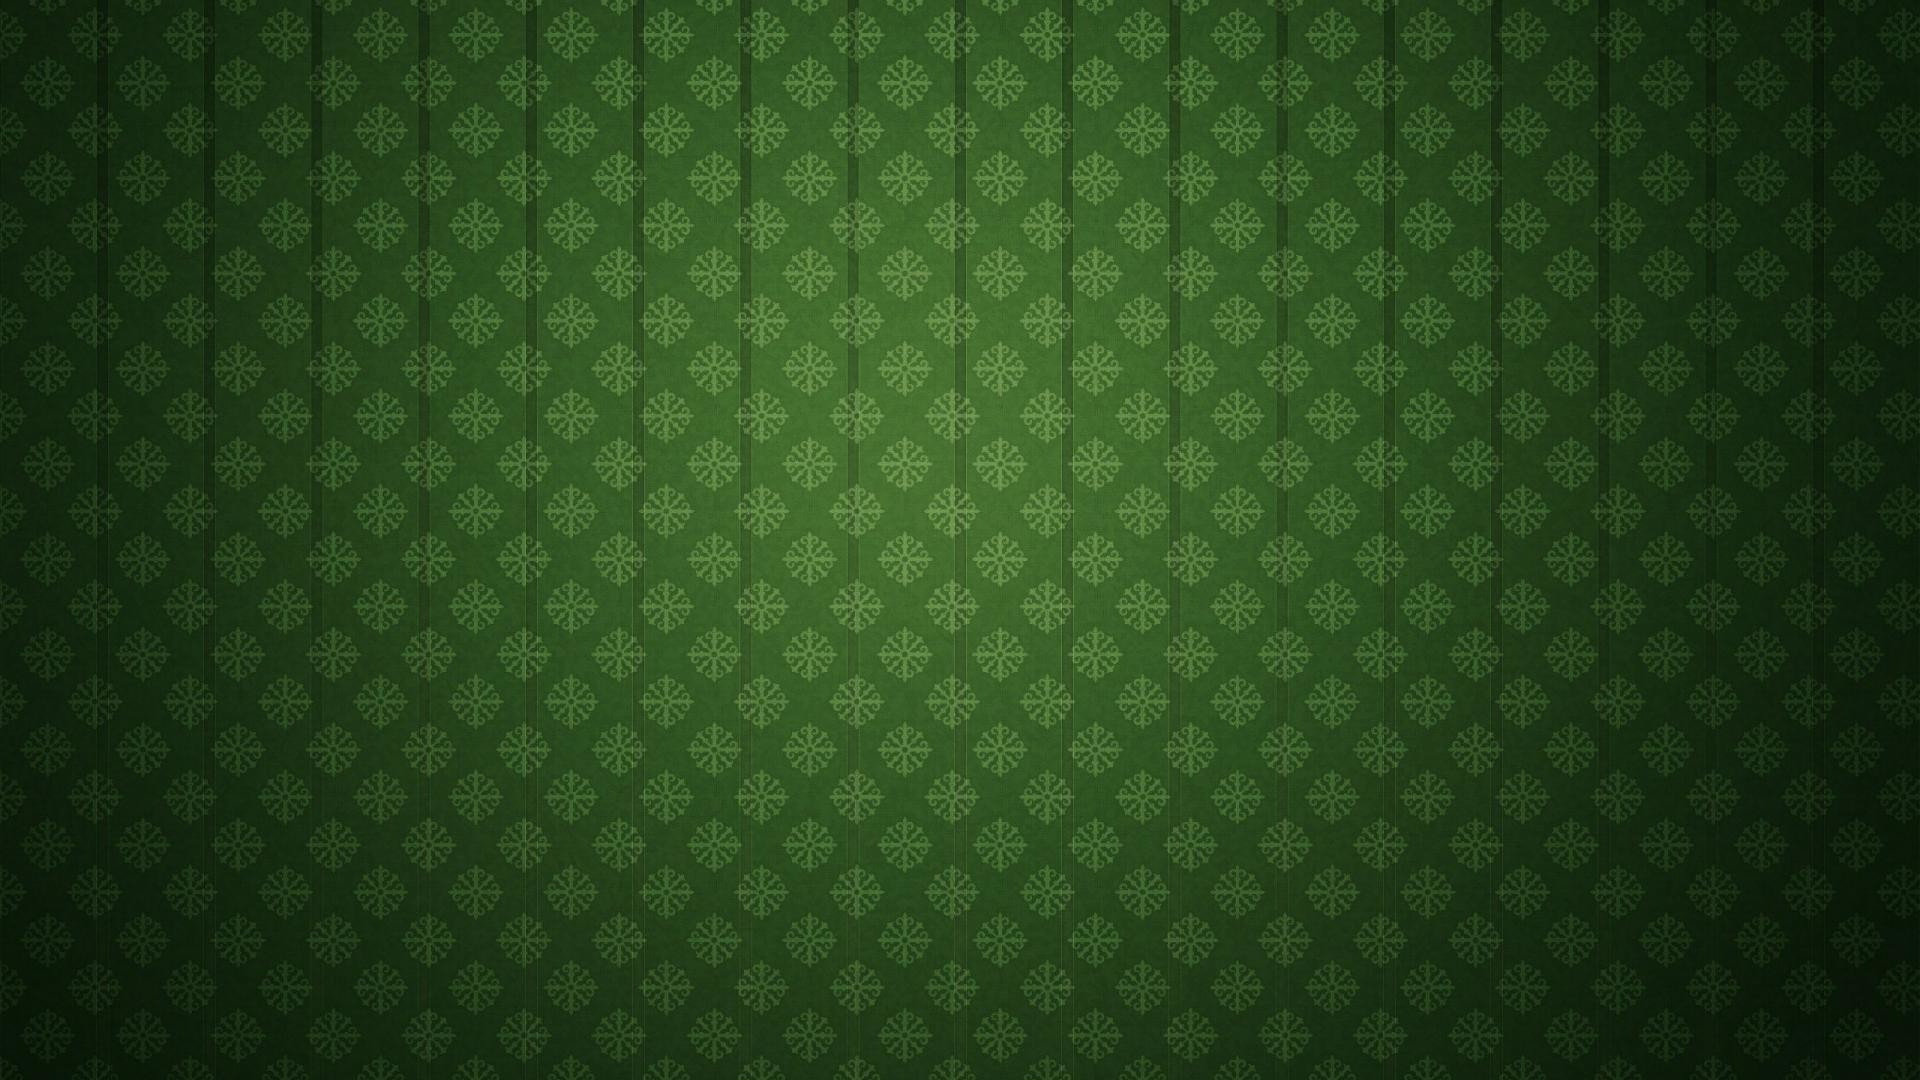 Cool green wallpaper 57 images 1920x1080 best ideas about wallpaper backgrounds on pinterest phone voltagebd Choice Image